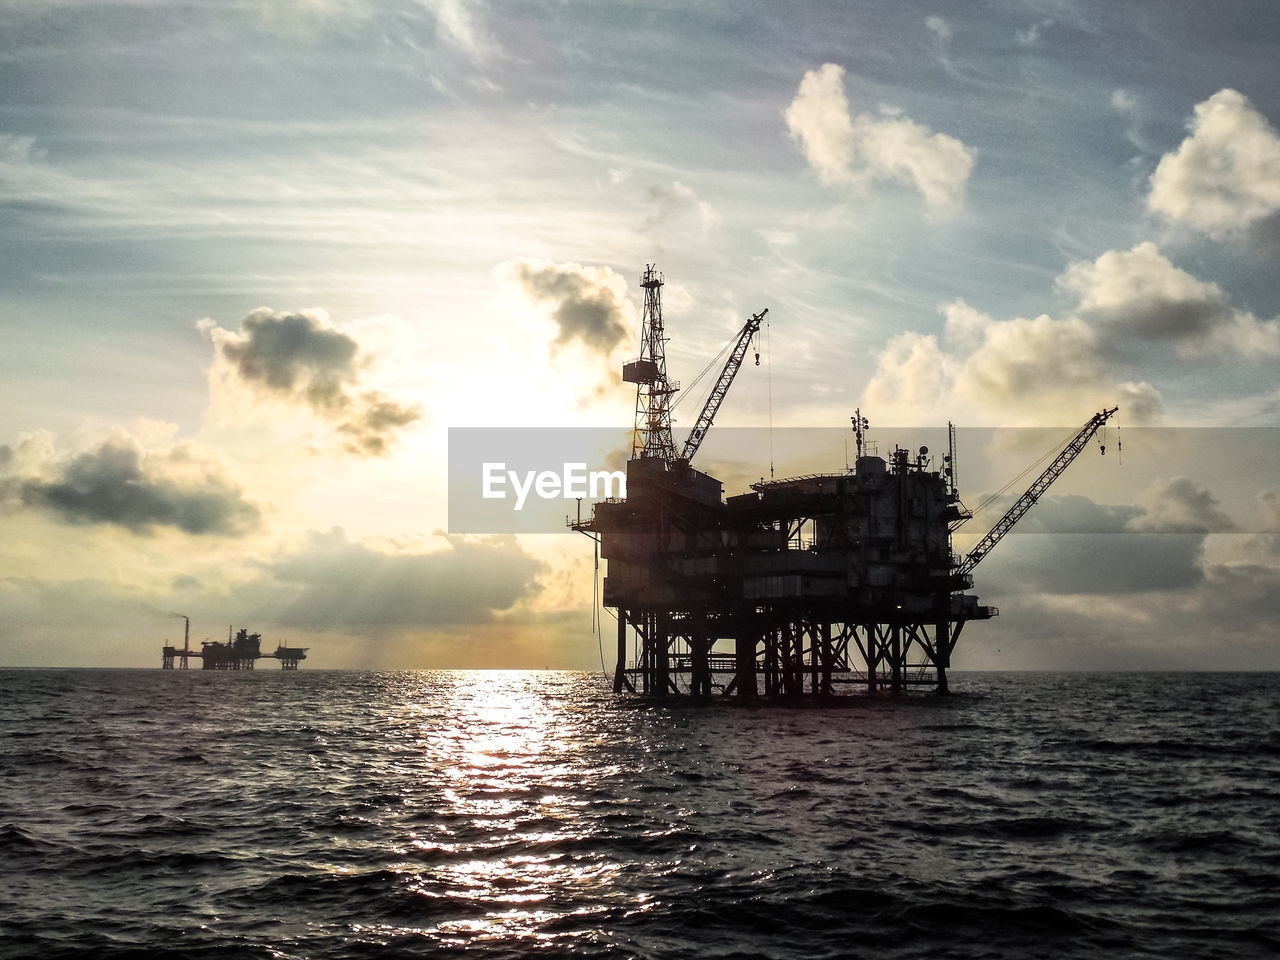 sky, water, offshore platform, sea, cloud - sky, industry, drilling rig, oil industry, fuel and power generation, built structure, waterfront, nature, sunset, no people, crude oil, crane - construction machinery, fossil fuel, gasoline, machinery, outdoors, horizon over water